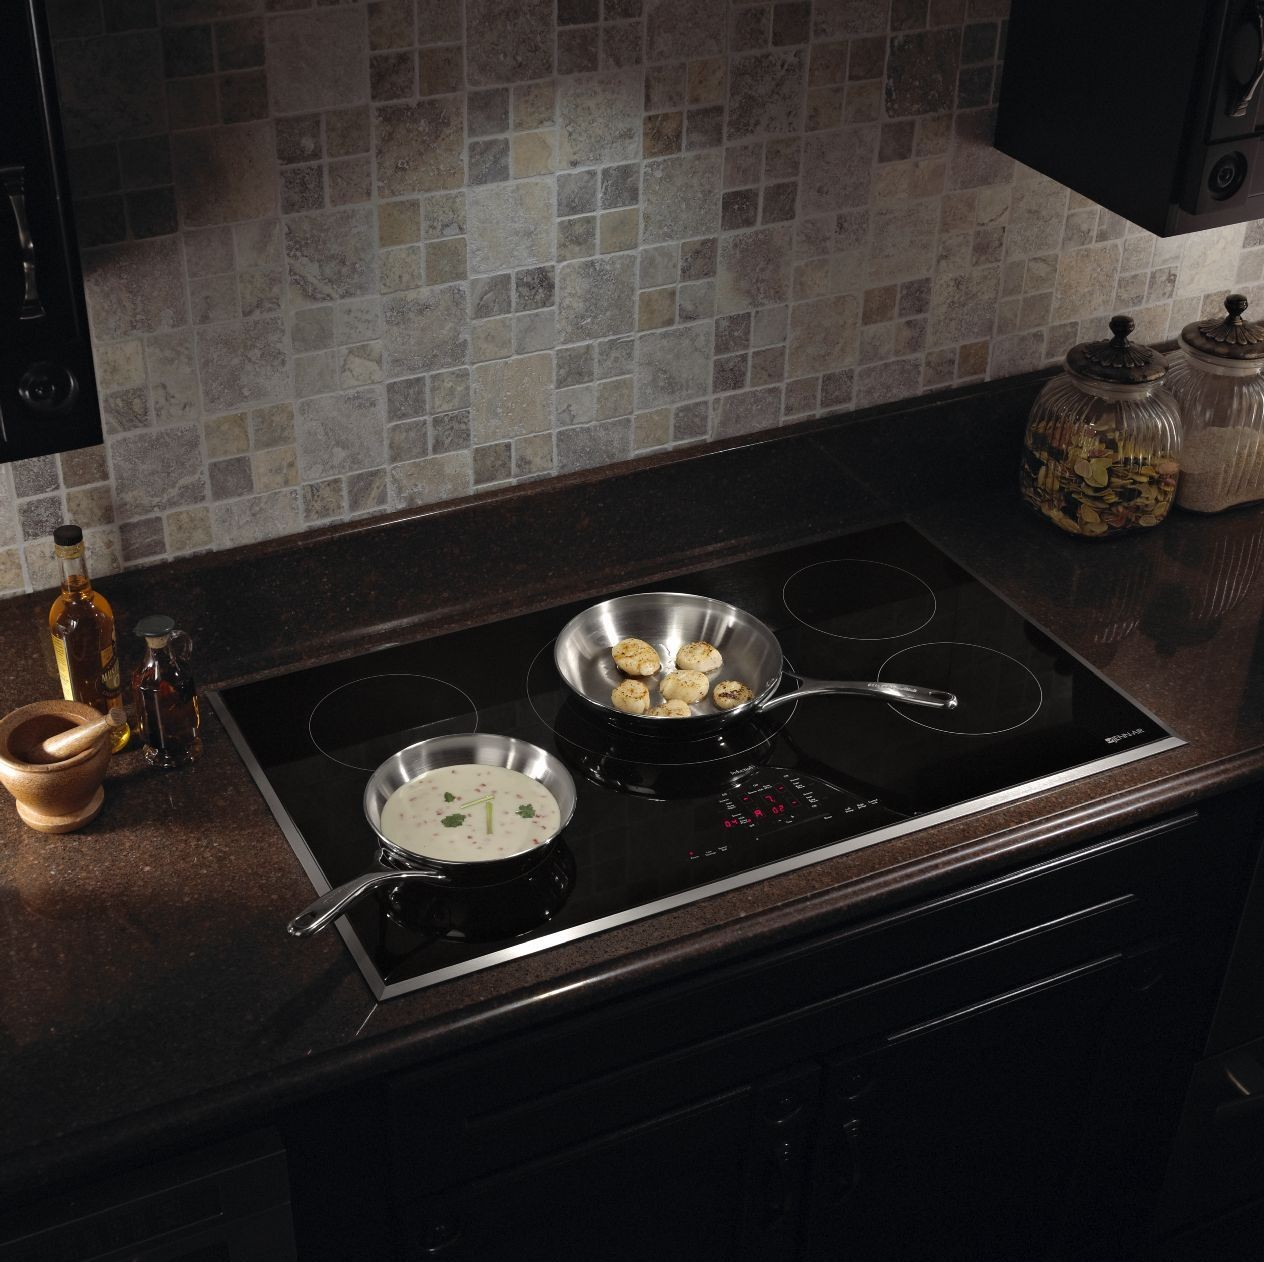 Jic4536xs Jenn Air 36 Induction Cooktop Black With Stainless Trim